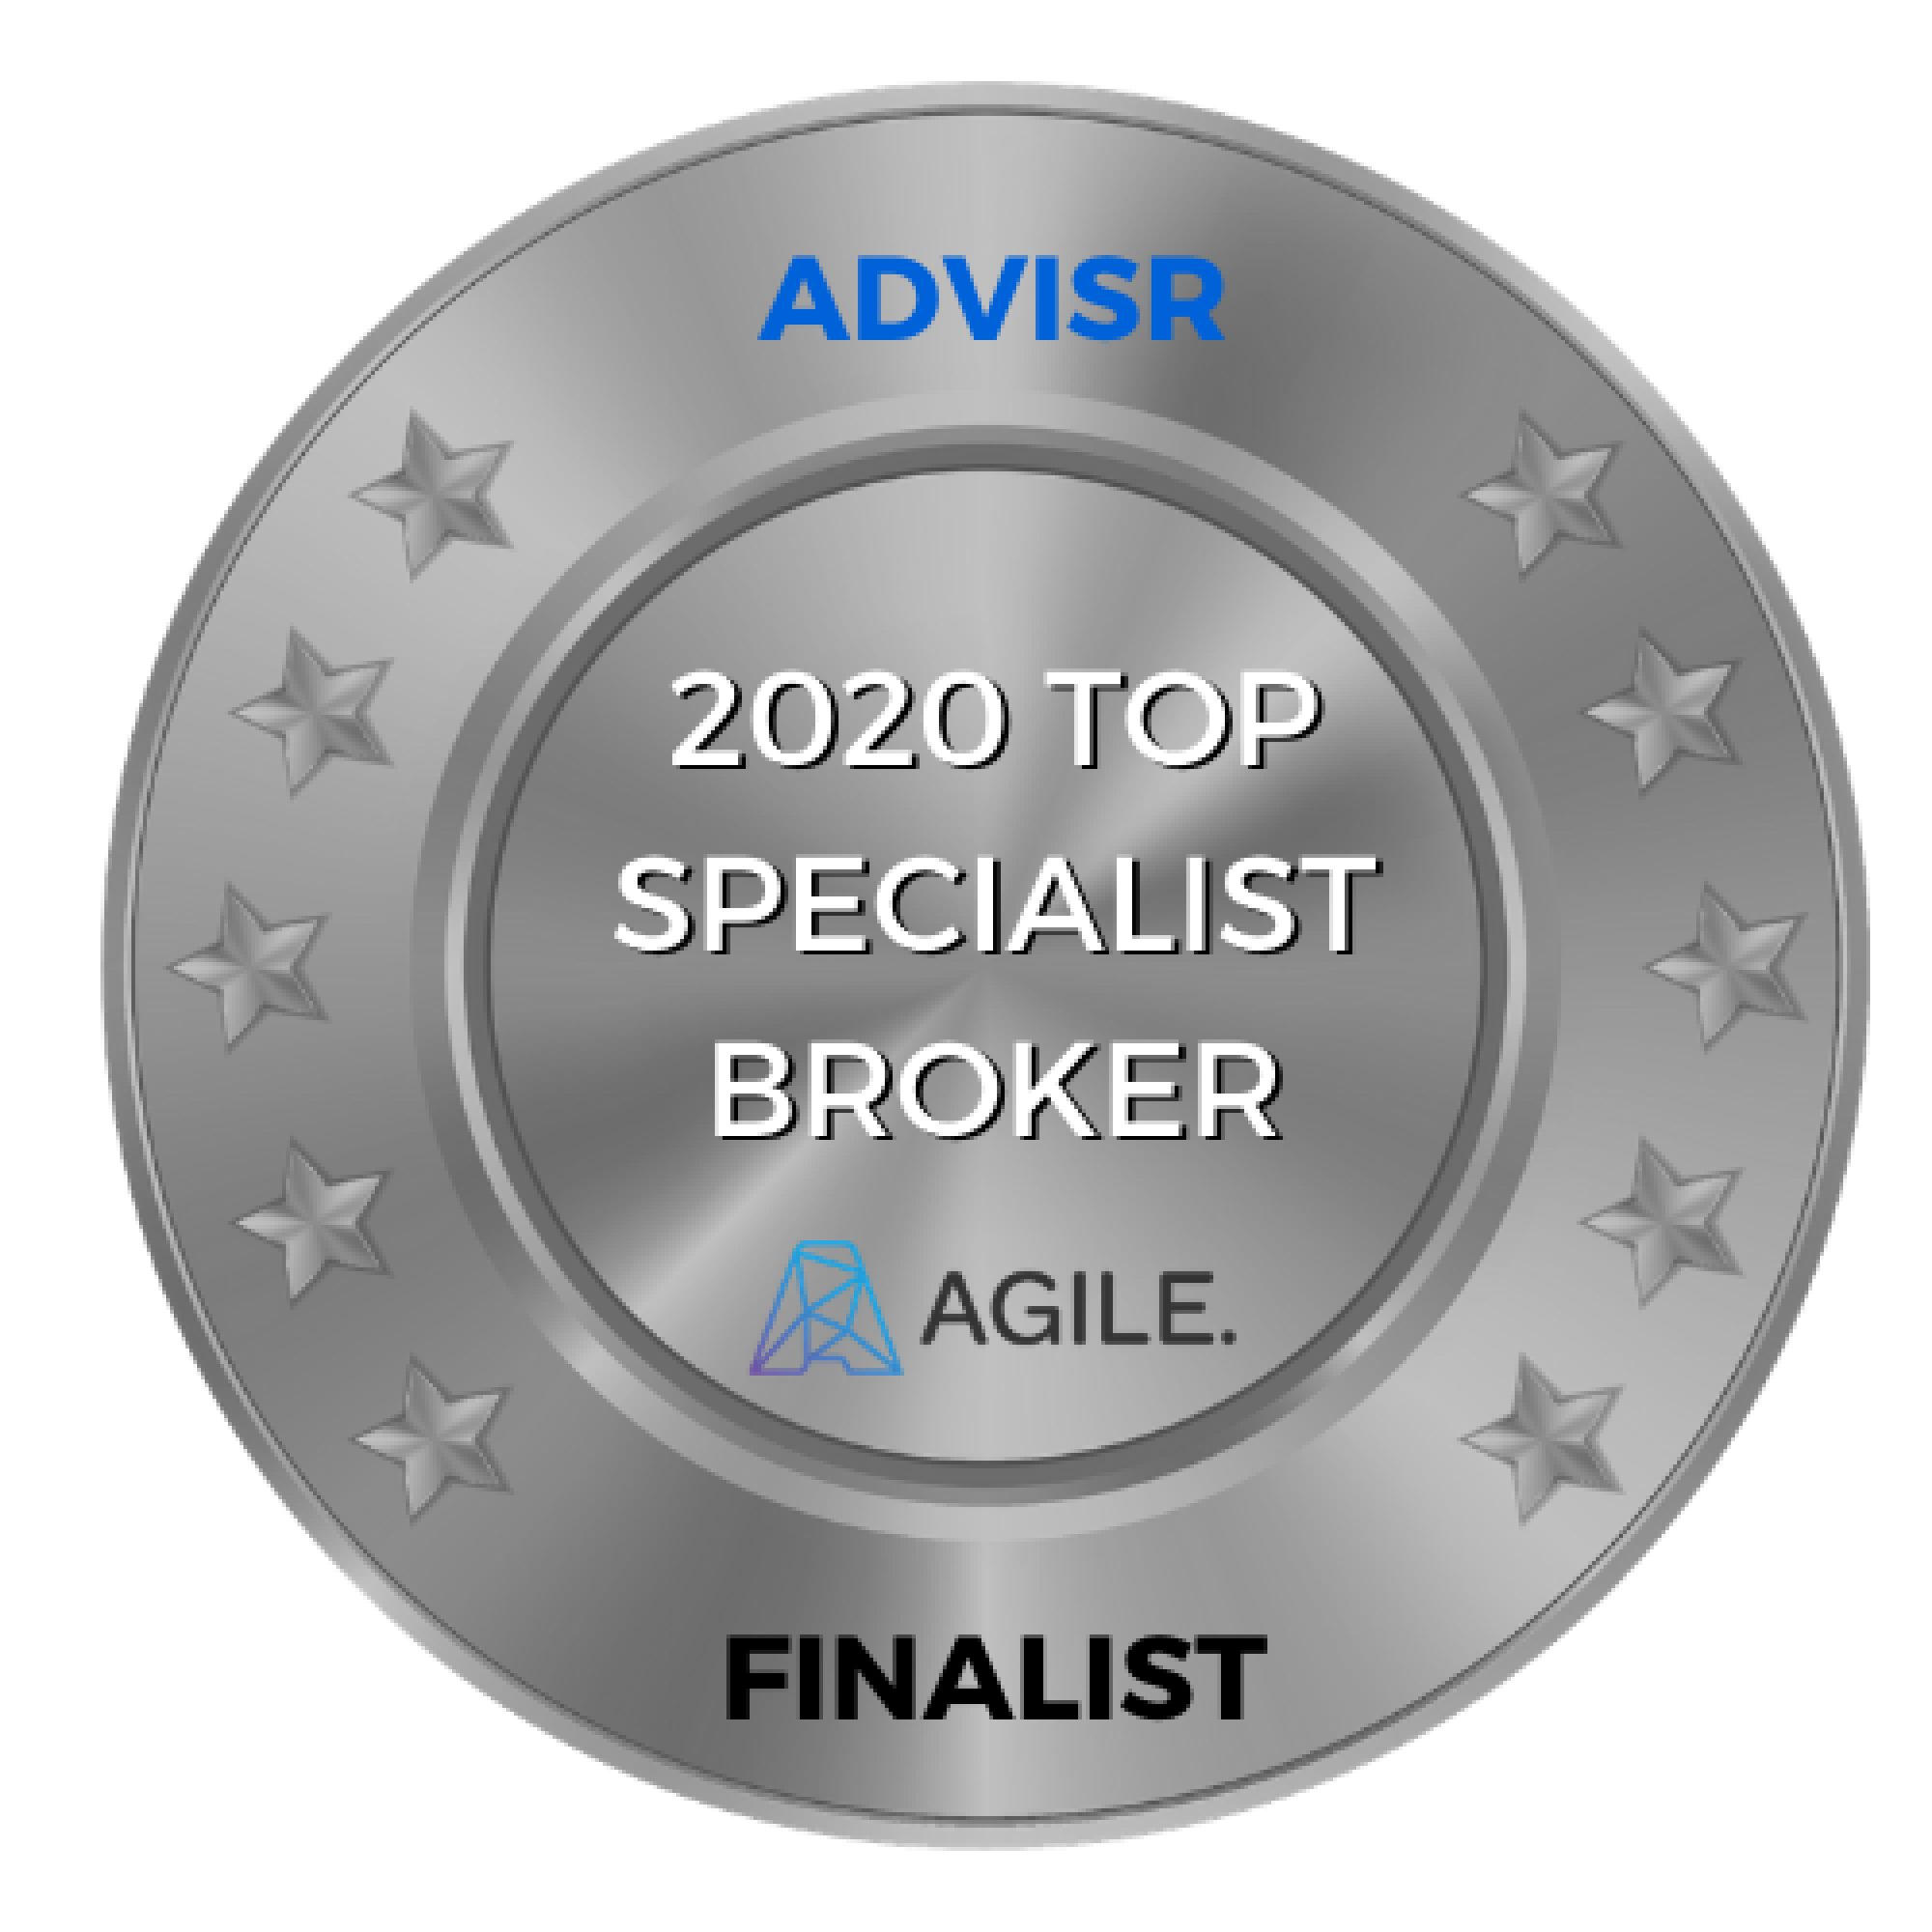 Advisr Insurance Broker Awards 2020 Finalist | Top Specialist Broker